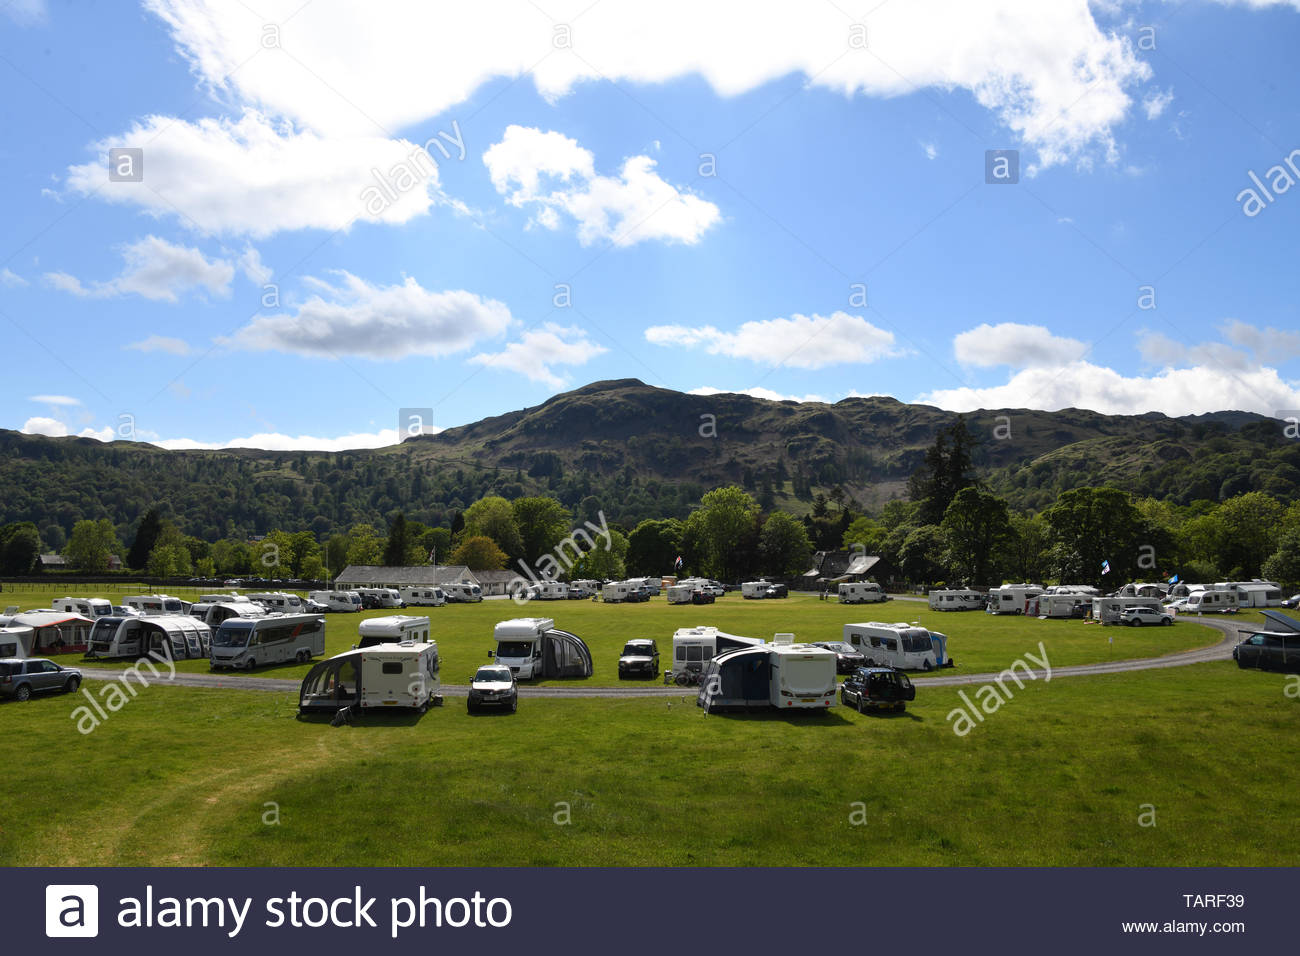 Dozens of caravans and campers parked up at Grasmere village in Cumbria in the Lake District for a camping holiday in the good sunny weather Stock Photo